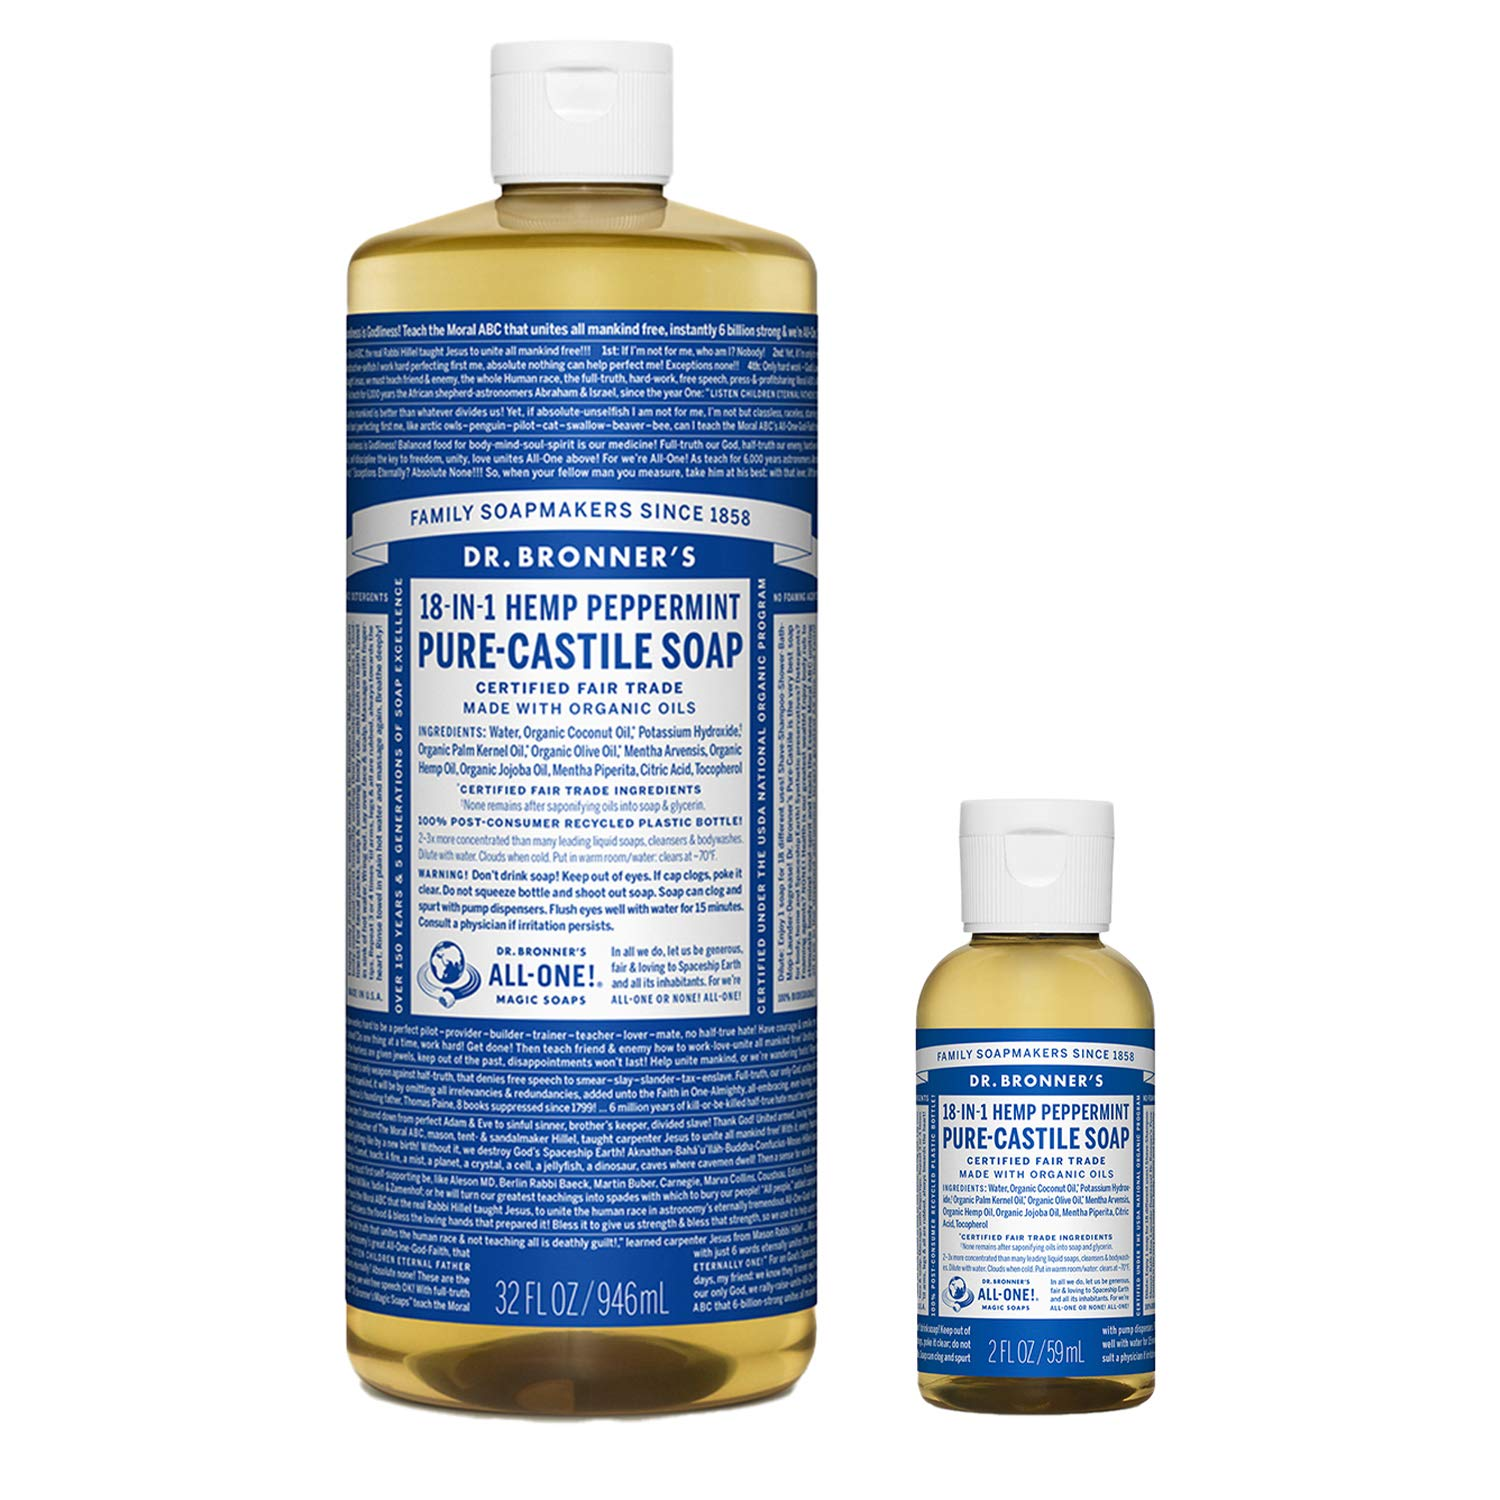 Dr. Bronner's - Pure-Castile Liquid Soap (Peppermint, 32 ounce and 2oz bundle) - Made with Organic Oils, 18-in-1 Uses: Face, Body, Hair, Laundry, Pets and Dishes, Concentrated, Vegan, Non-GMO